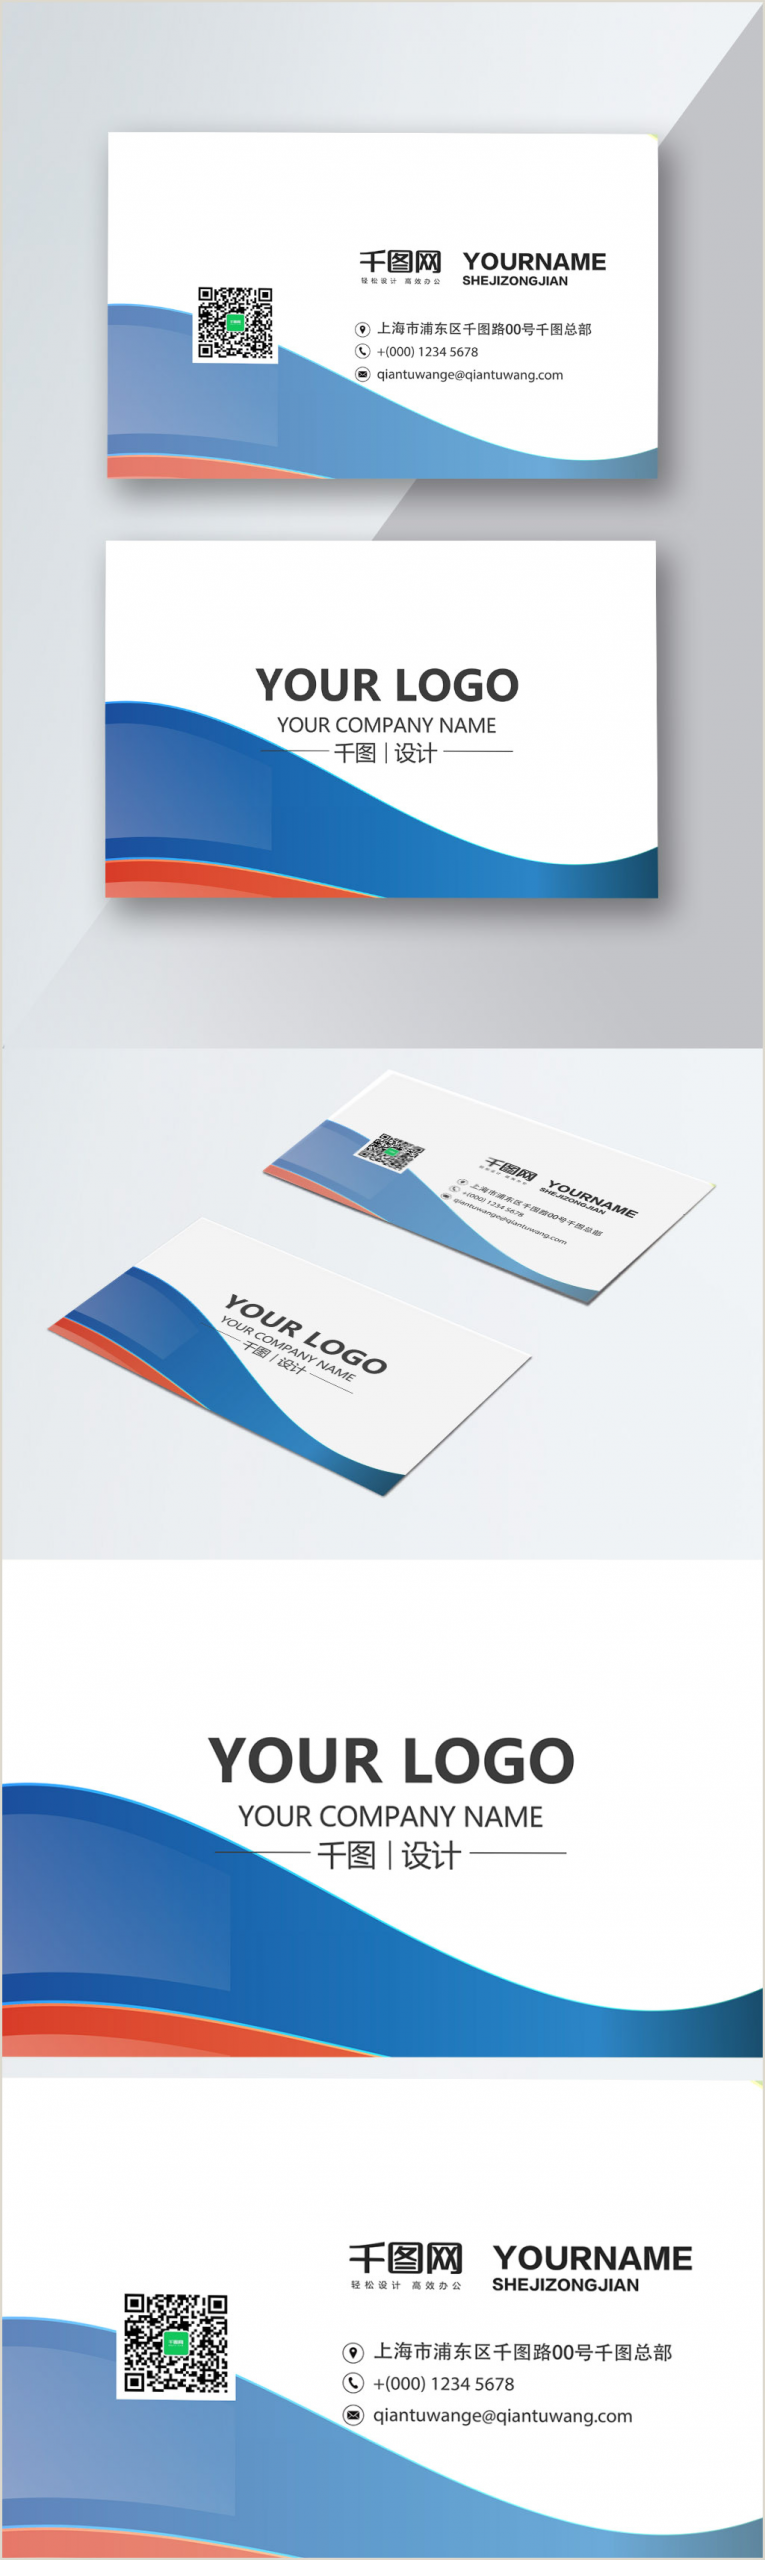 Painting Logos Business Cards Paint Business Card Picture Paint Template Image Picture